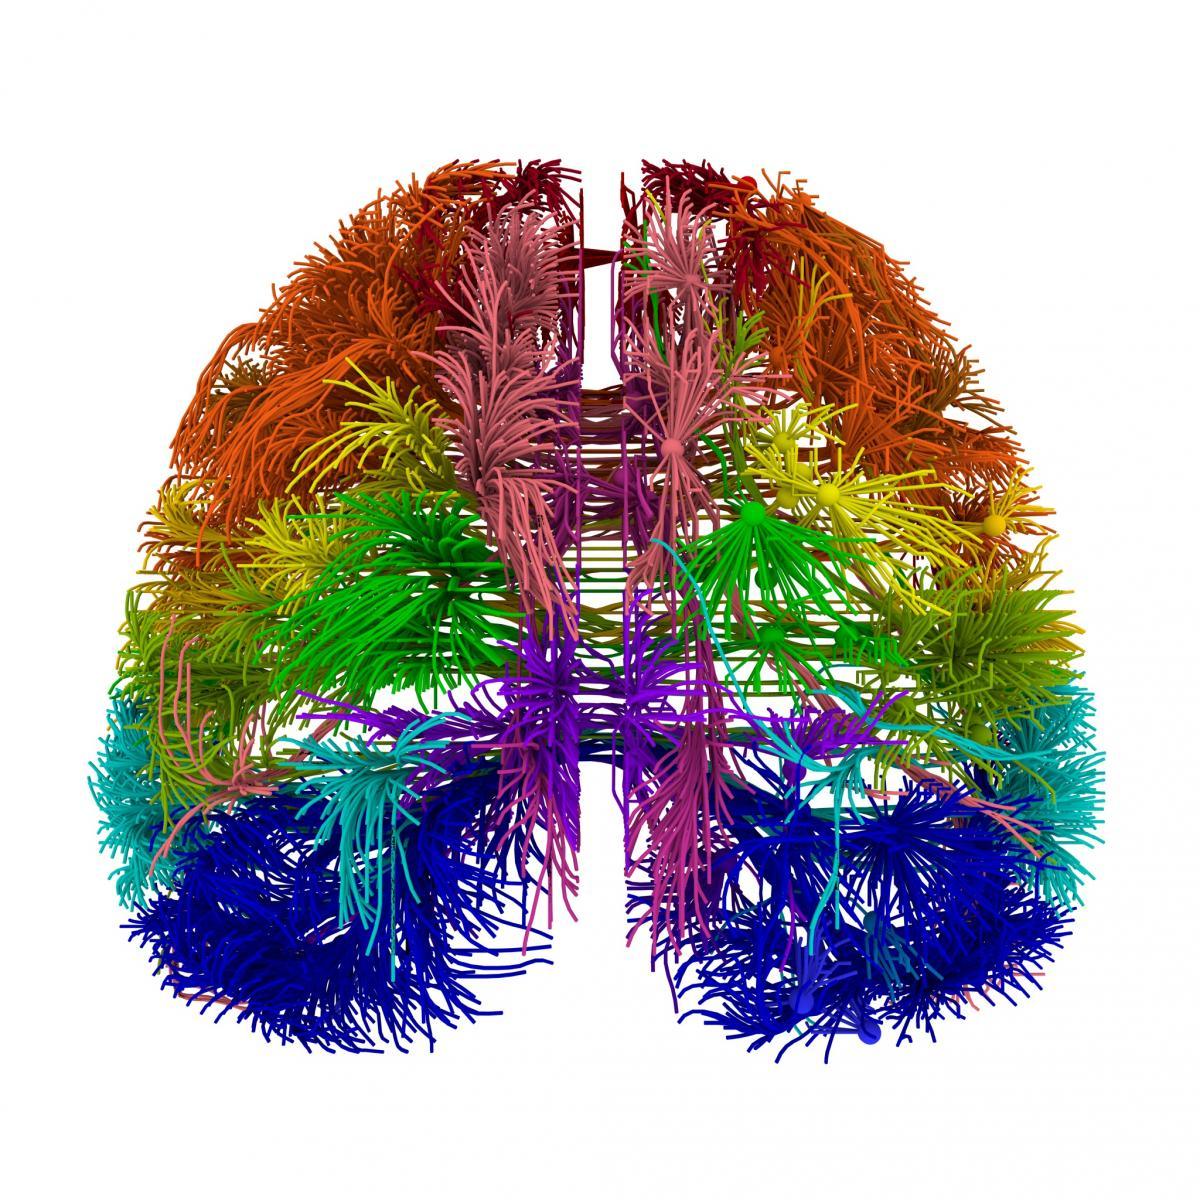 Research showcases most comprehensive wiring diagram of mammalian brain to  dateMedical Xpress